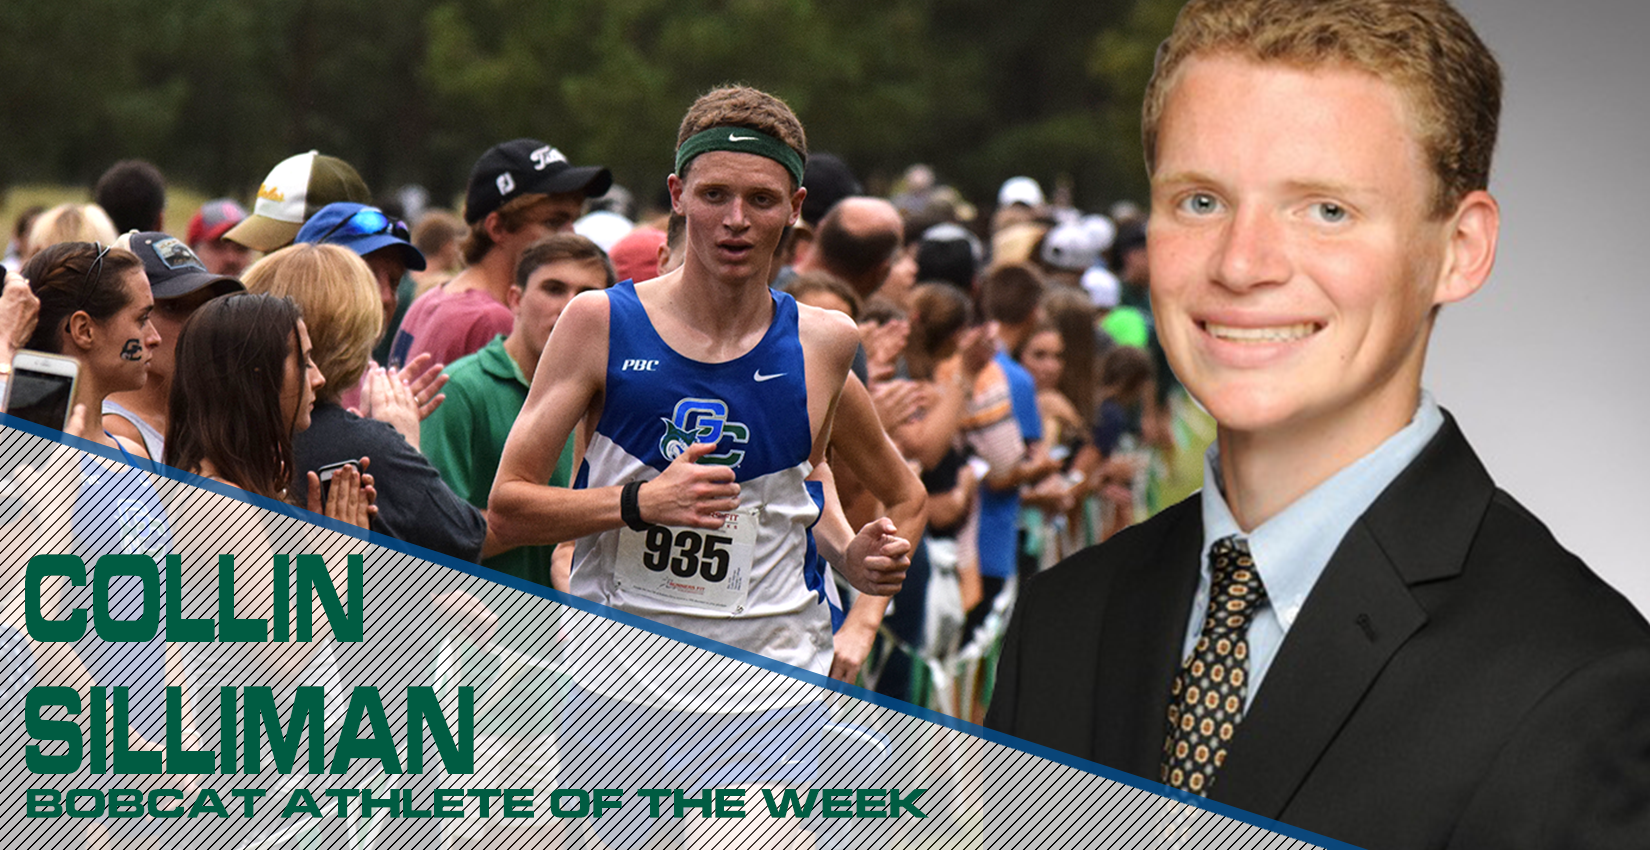 Collin Silliman earns Bobcat Athlete of the Week.